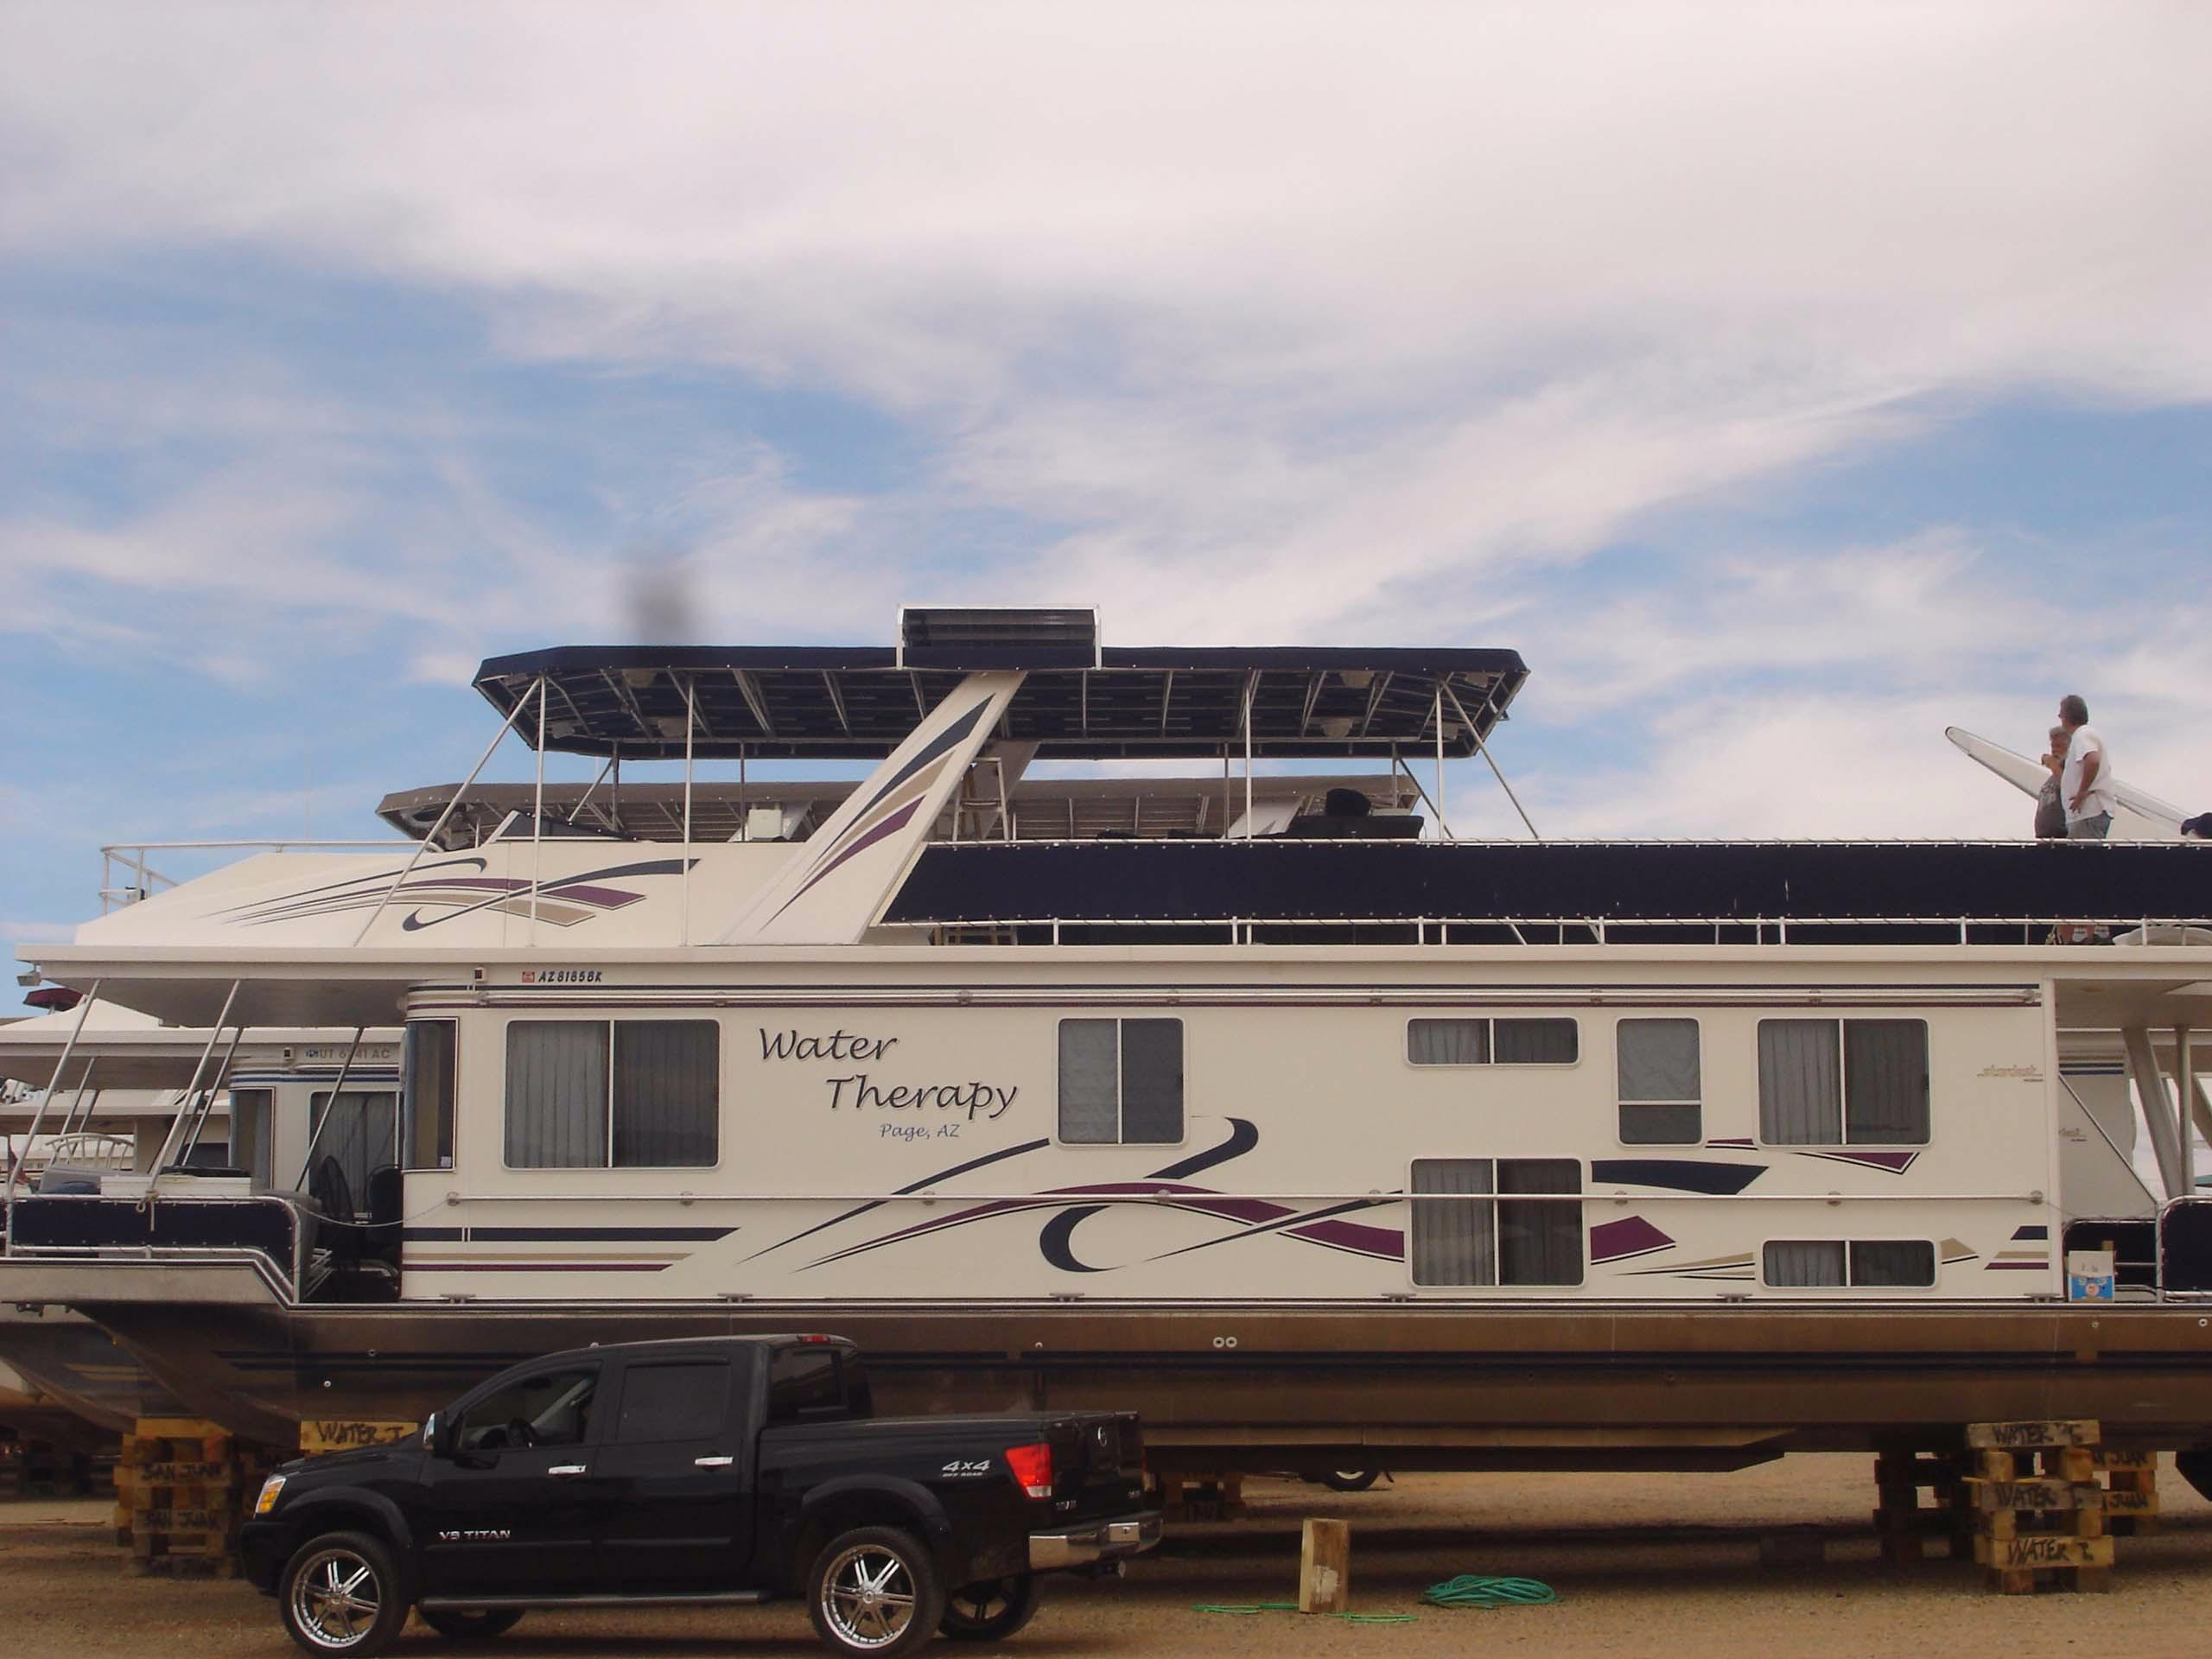 2004 Stardust Cruisers Water Therapy Trip 9 Power Boat For Sale